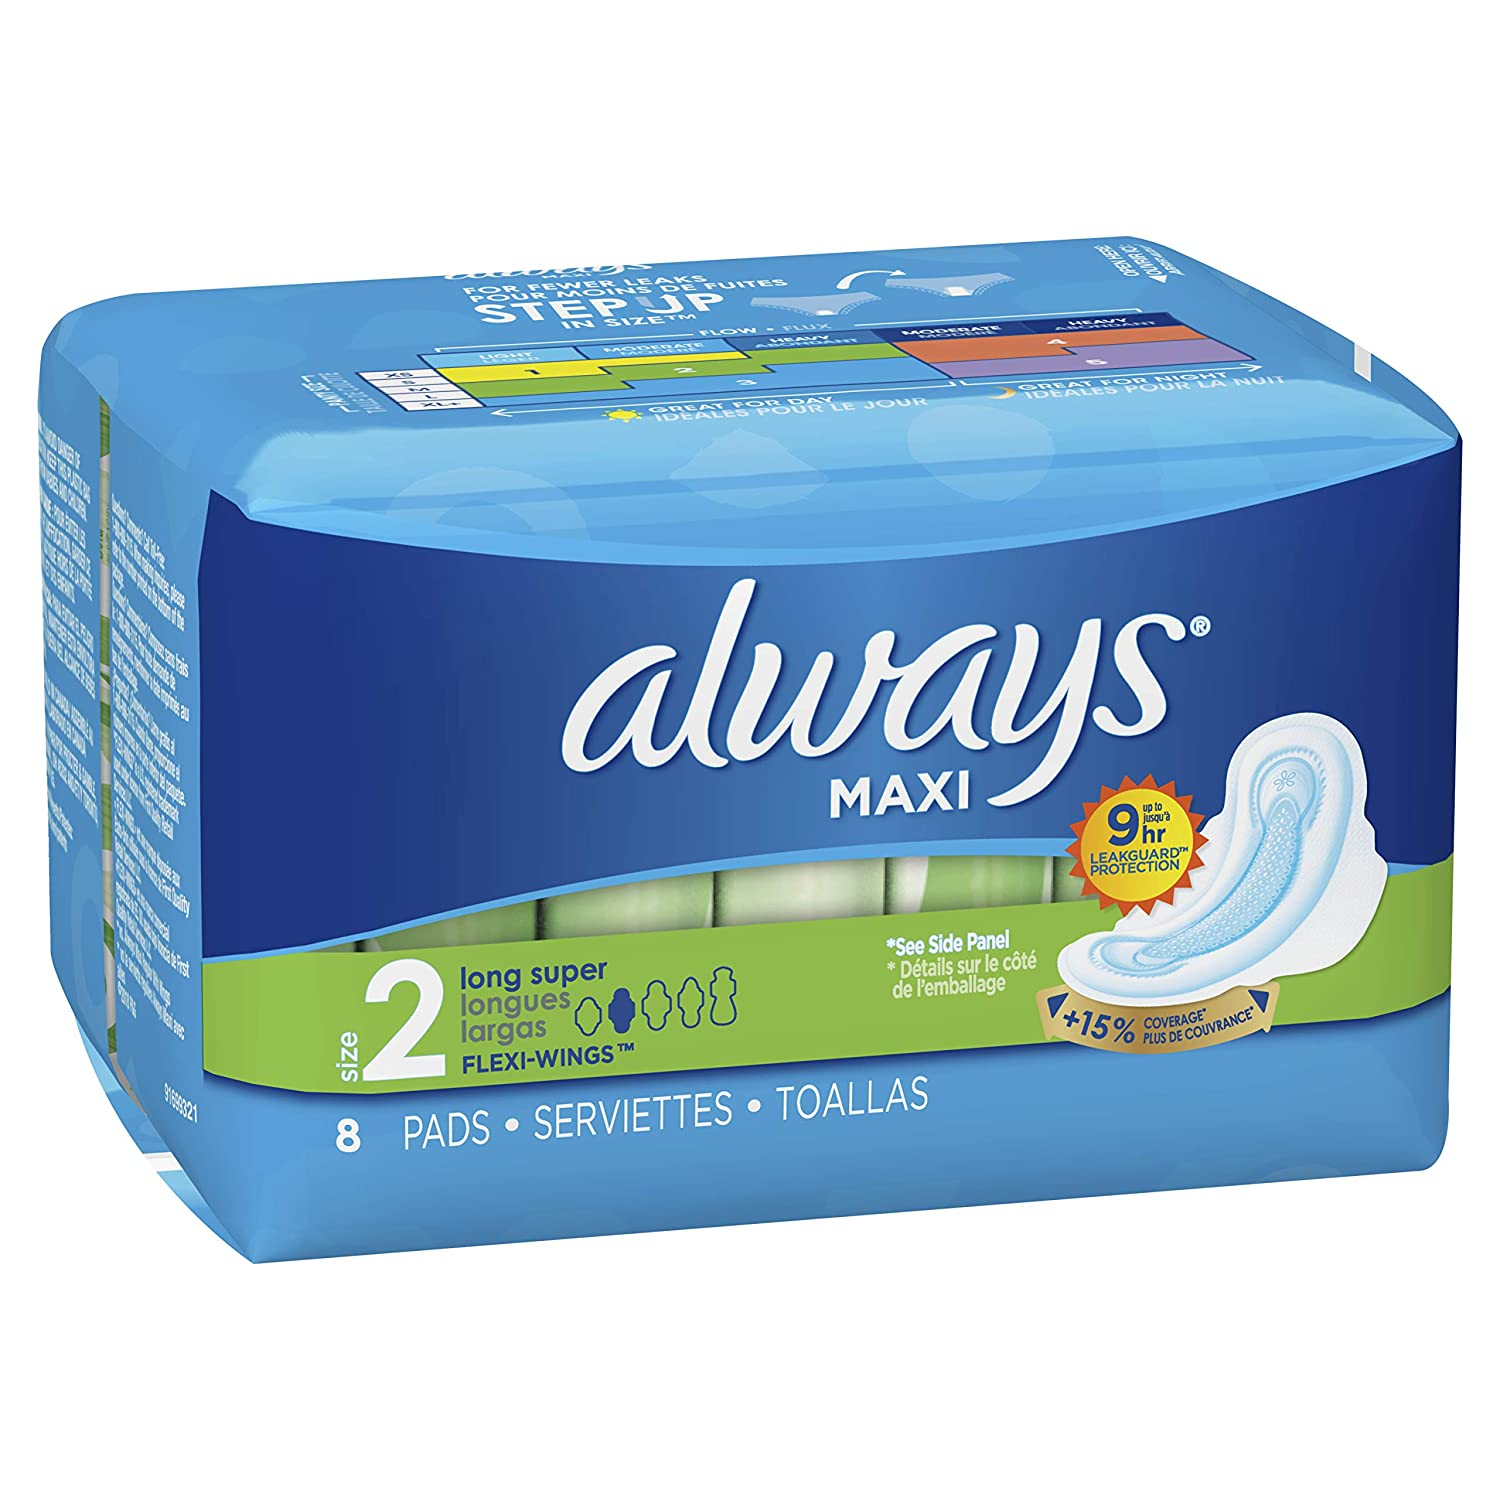 Amazon.com: Always Maxi Long Super Pads with Flexi-Wings, 8-Count: Health & Personal Care